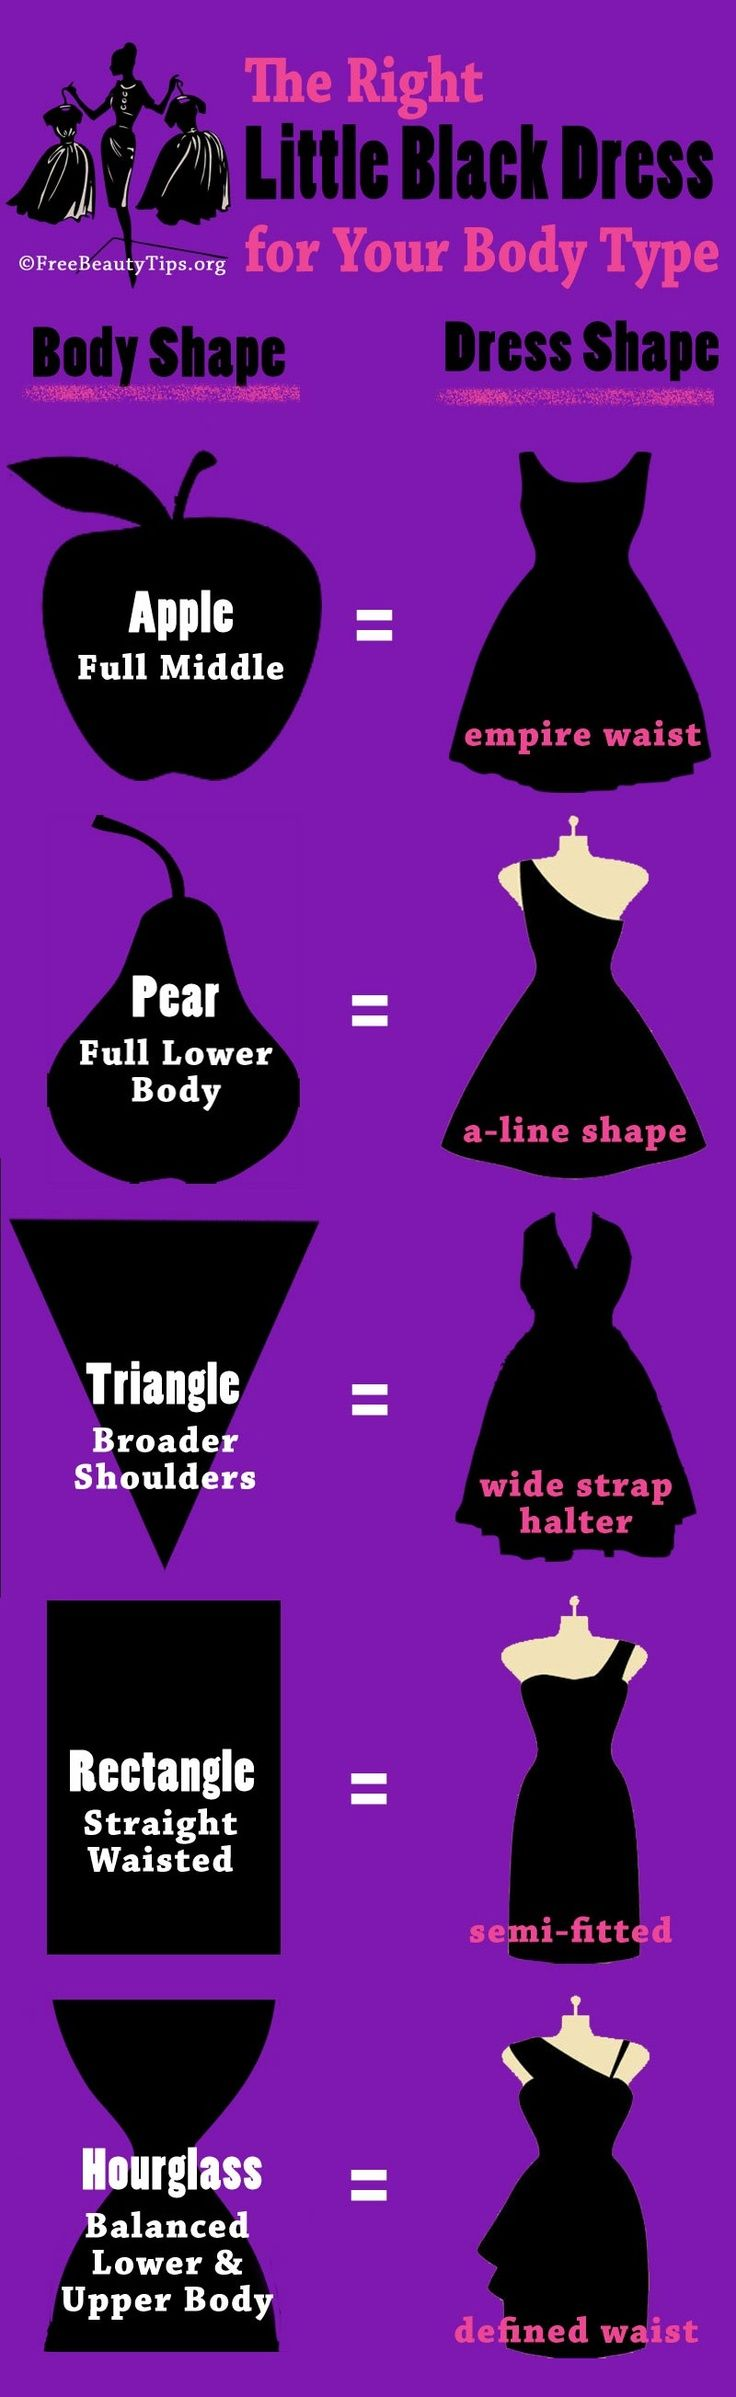 Little Black Dress Shapes by Body Type.